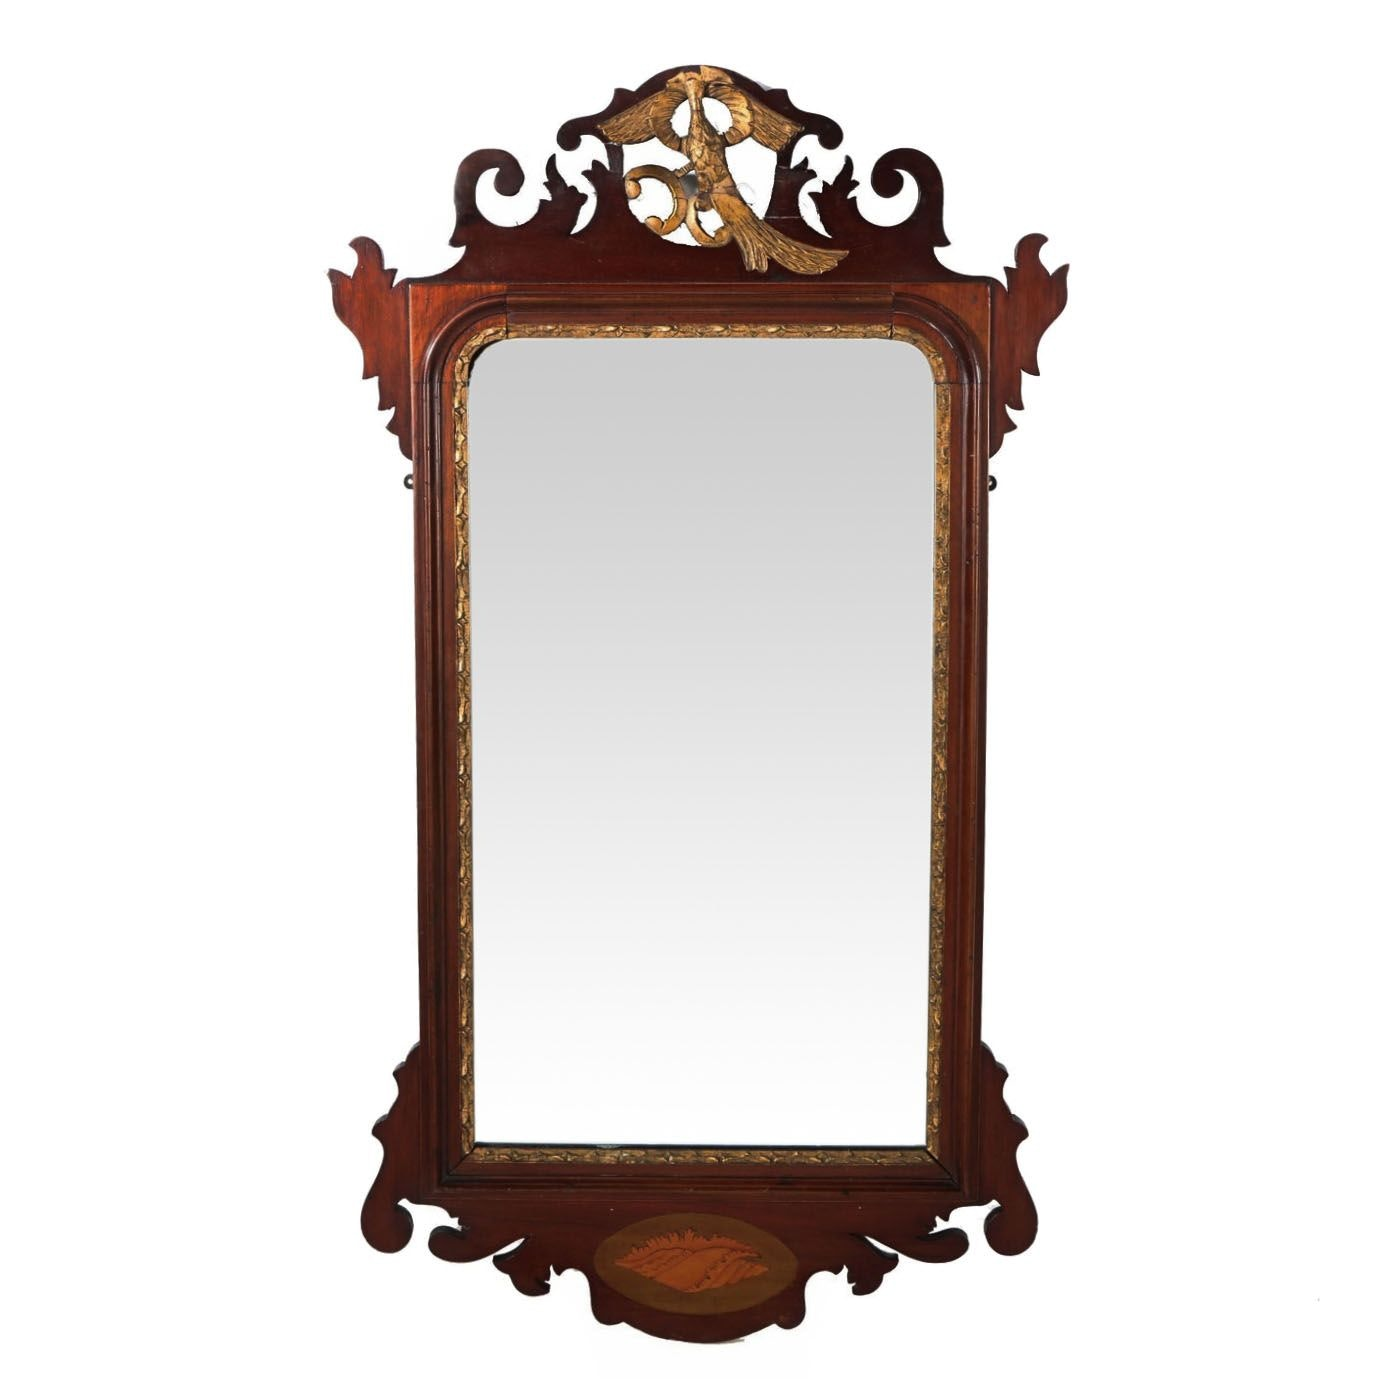 George III Style Mahogany, Parcel Gilt and Marquetry Mirror